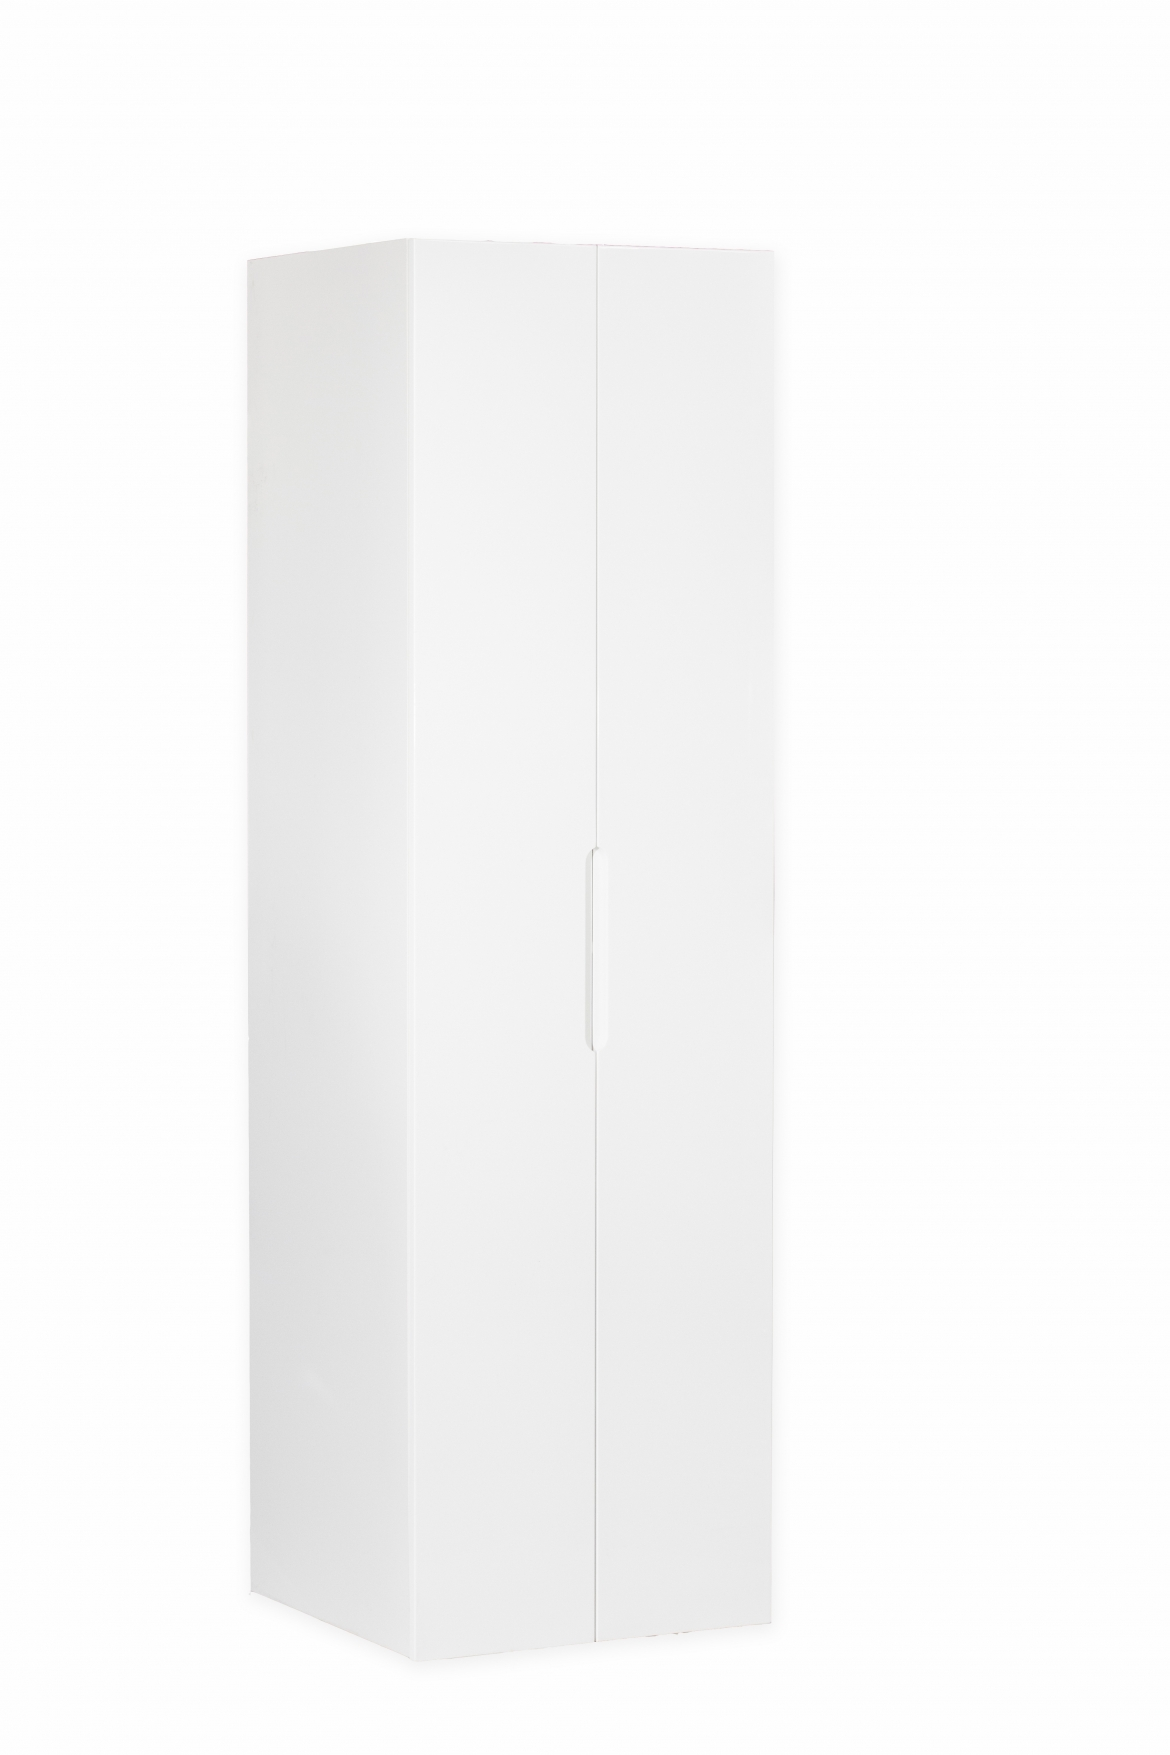 450 mm kitchen pantry cabinet with 2 pac gloss white doors